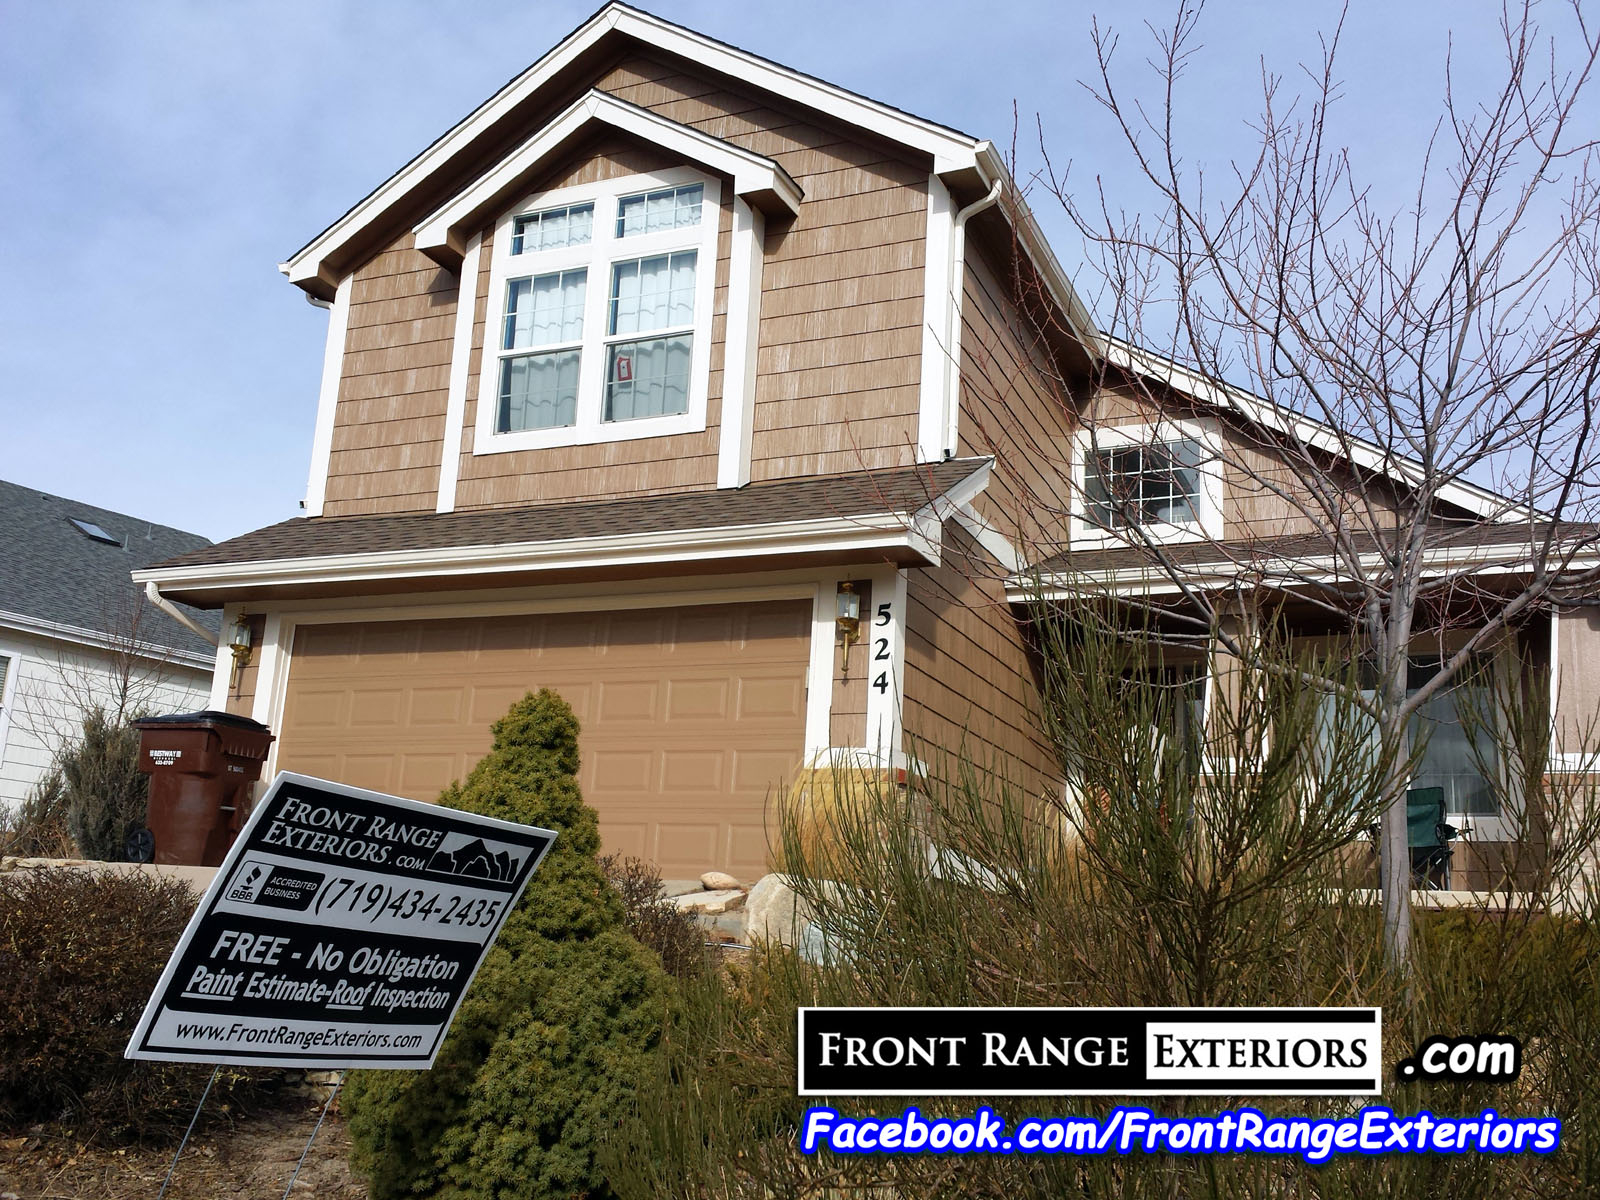 North Colorado Springs Painting Roofing After Hail Damage Front Range Exteriors Inc